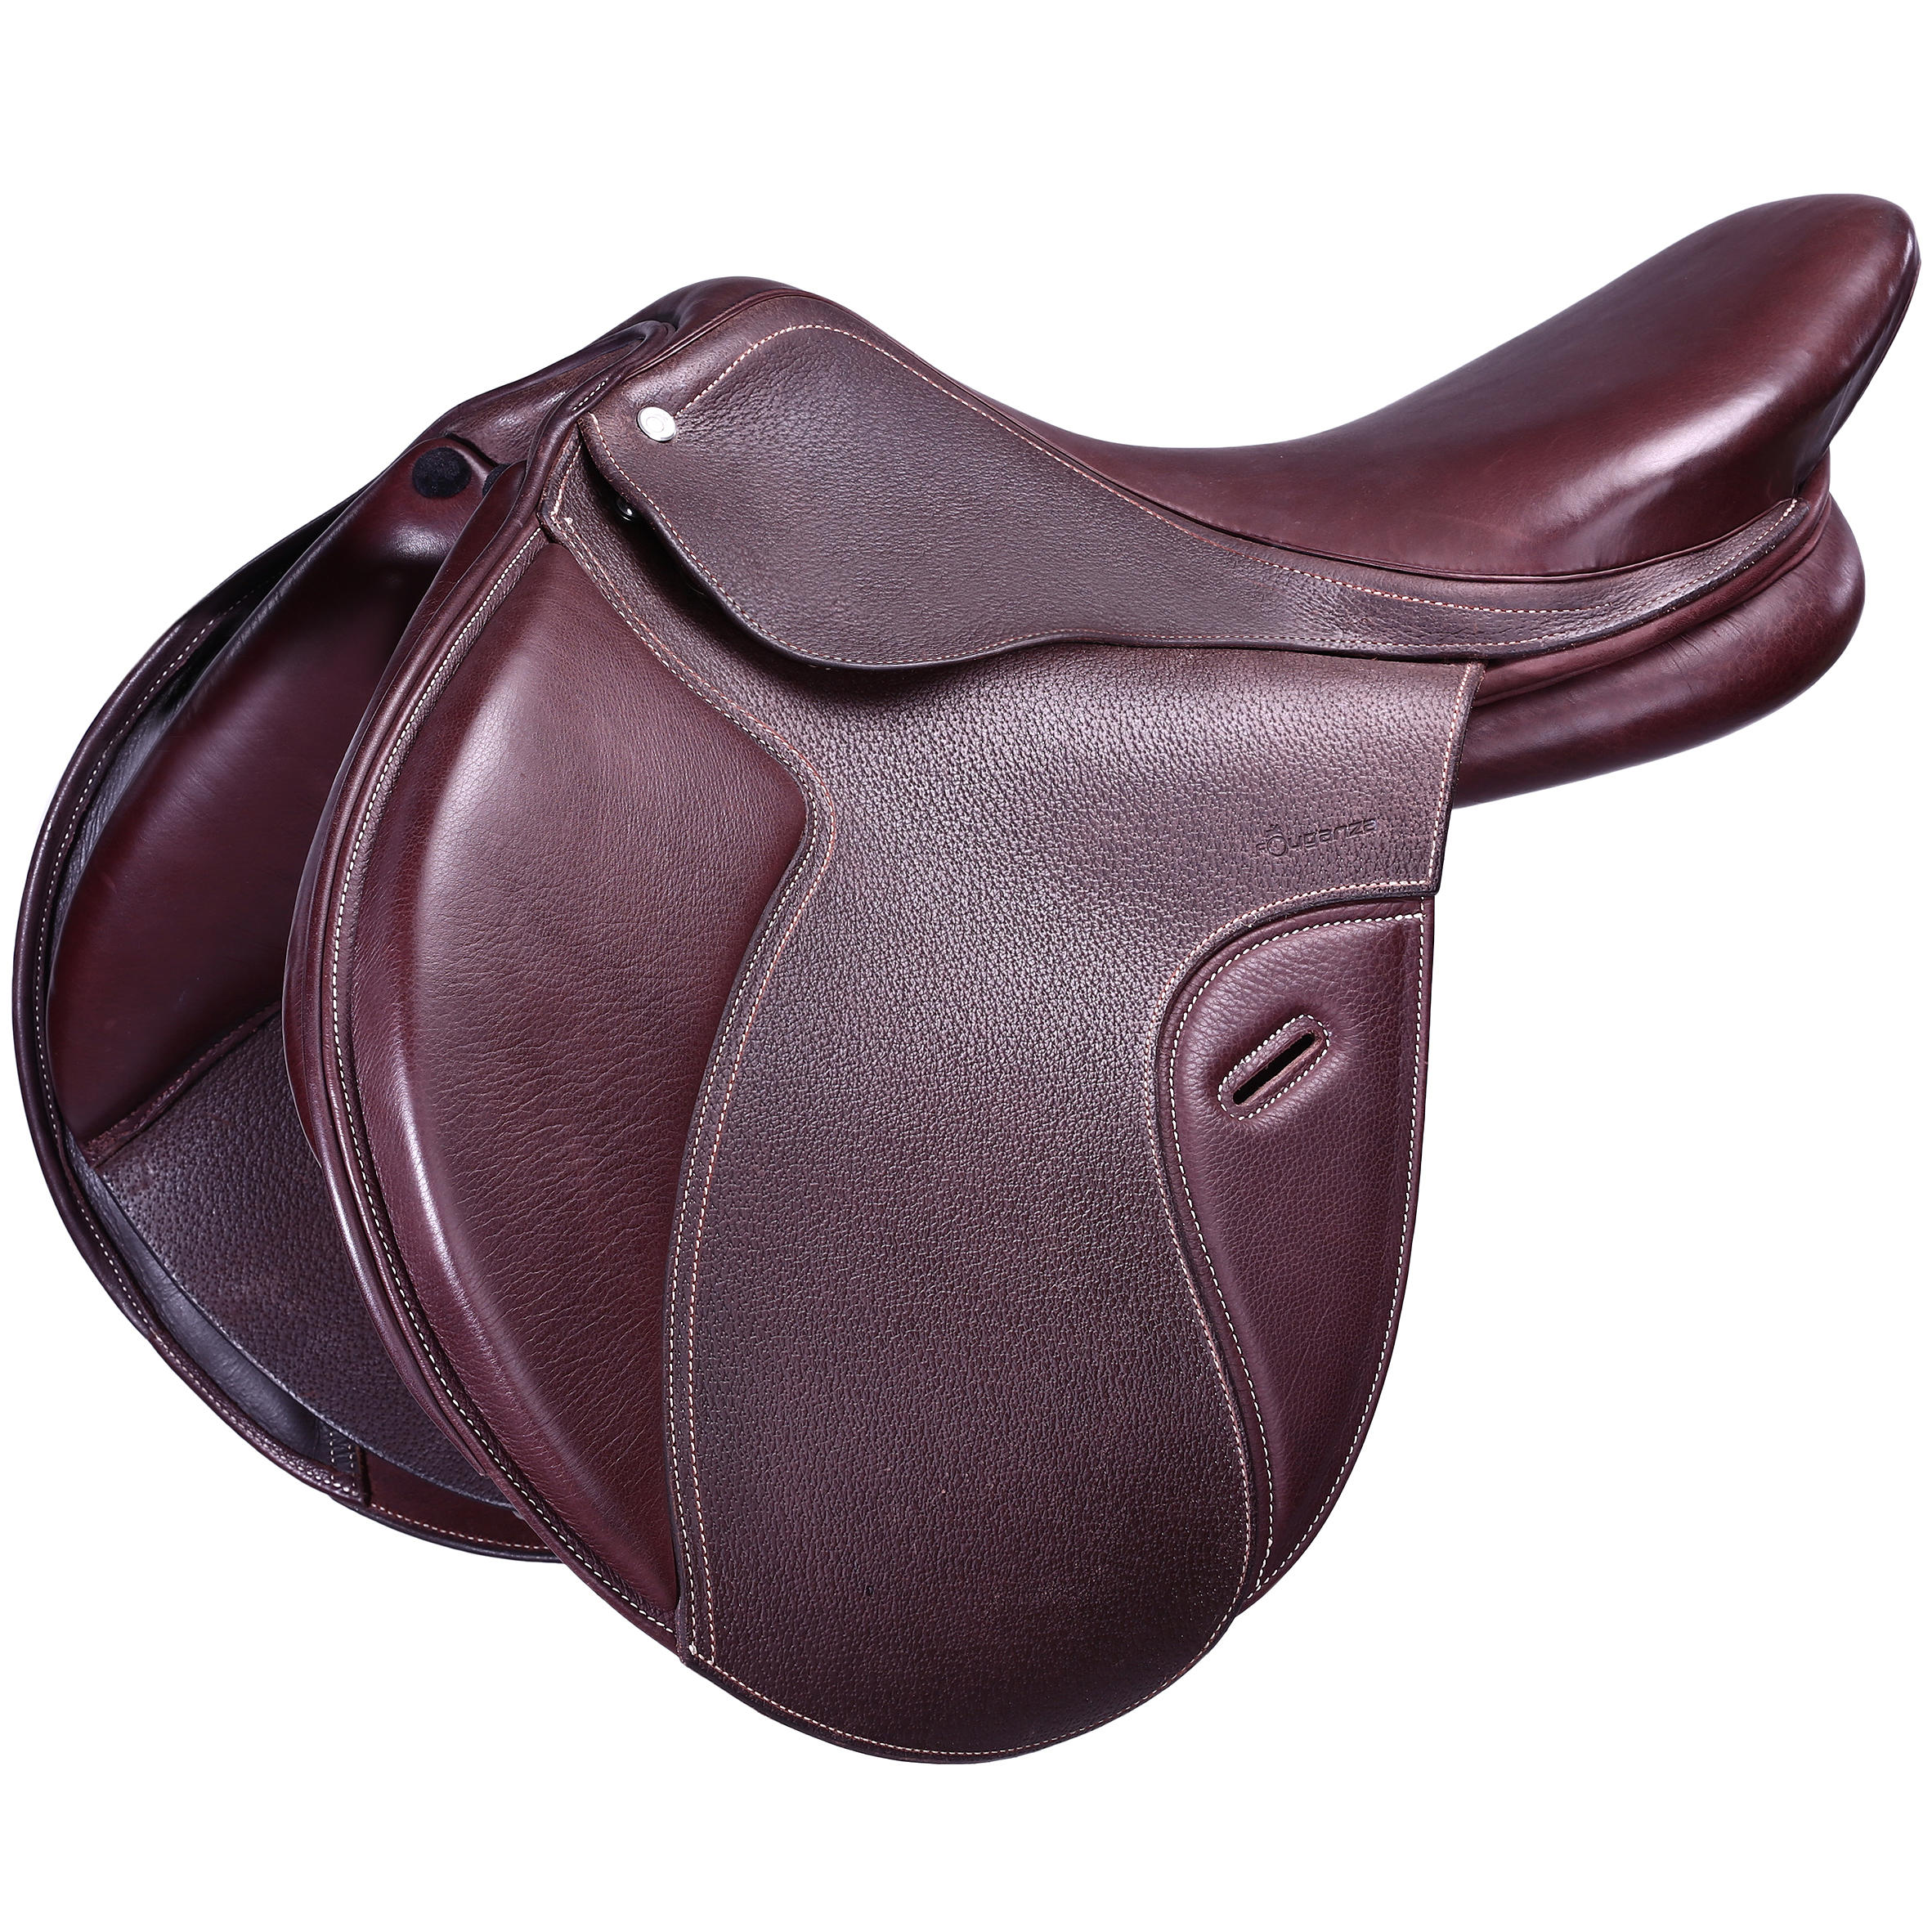 Horse Riding Paddock Adjustable Tree Leather Saddle 17.5_QUOTE_-Brown